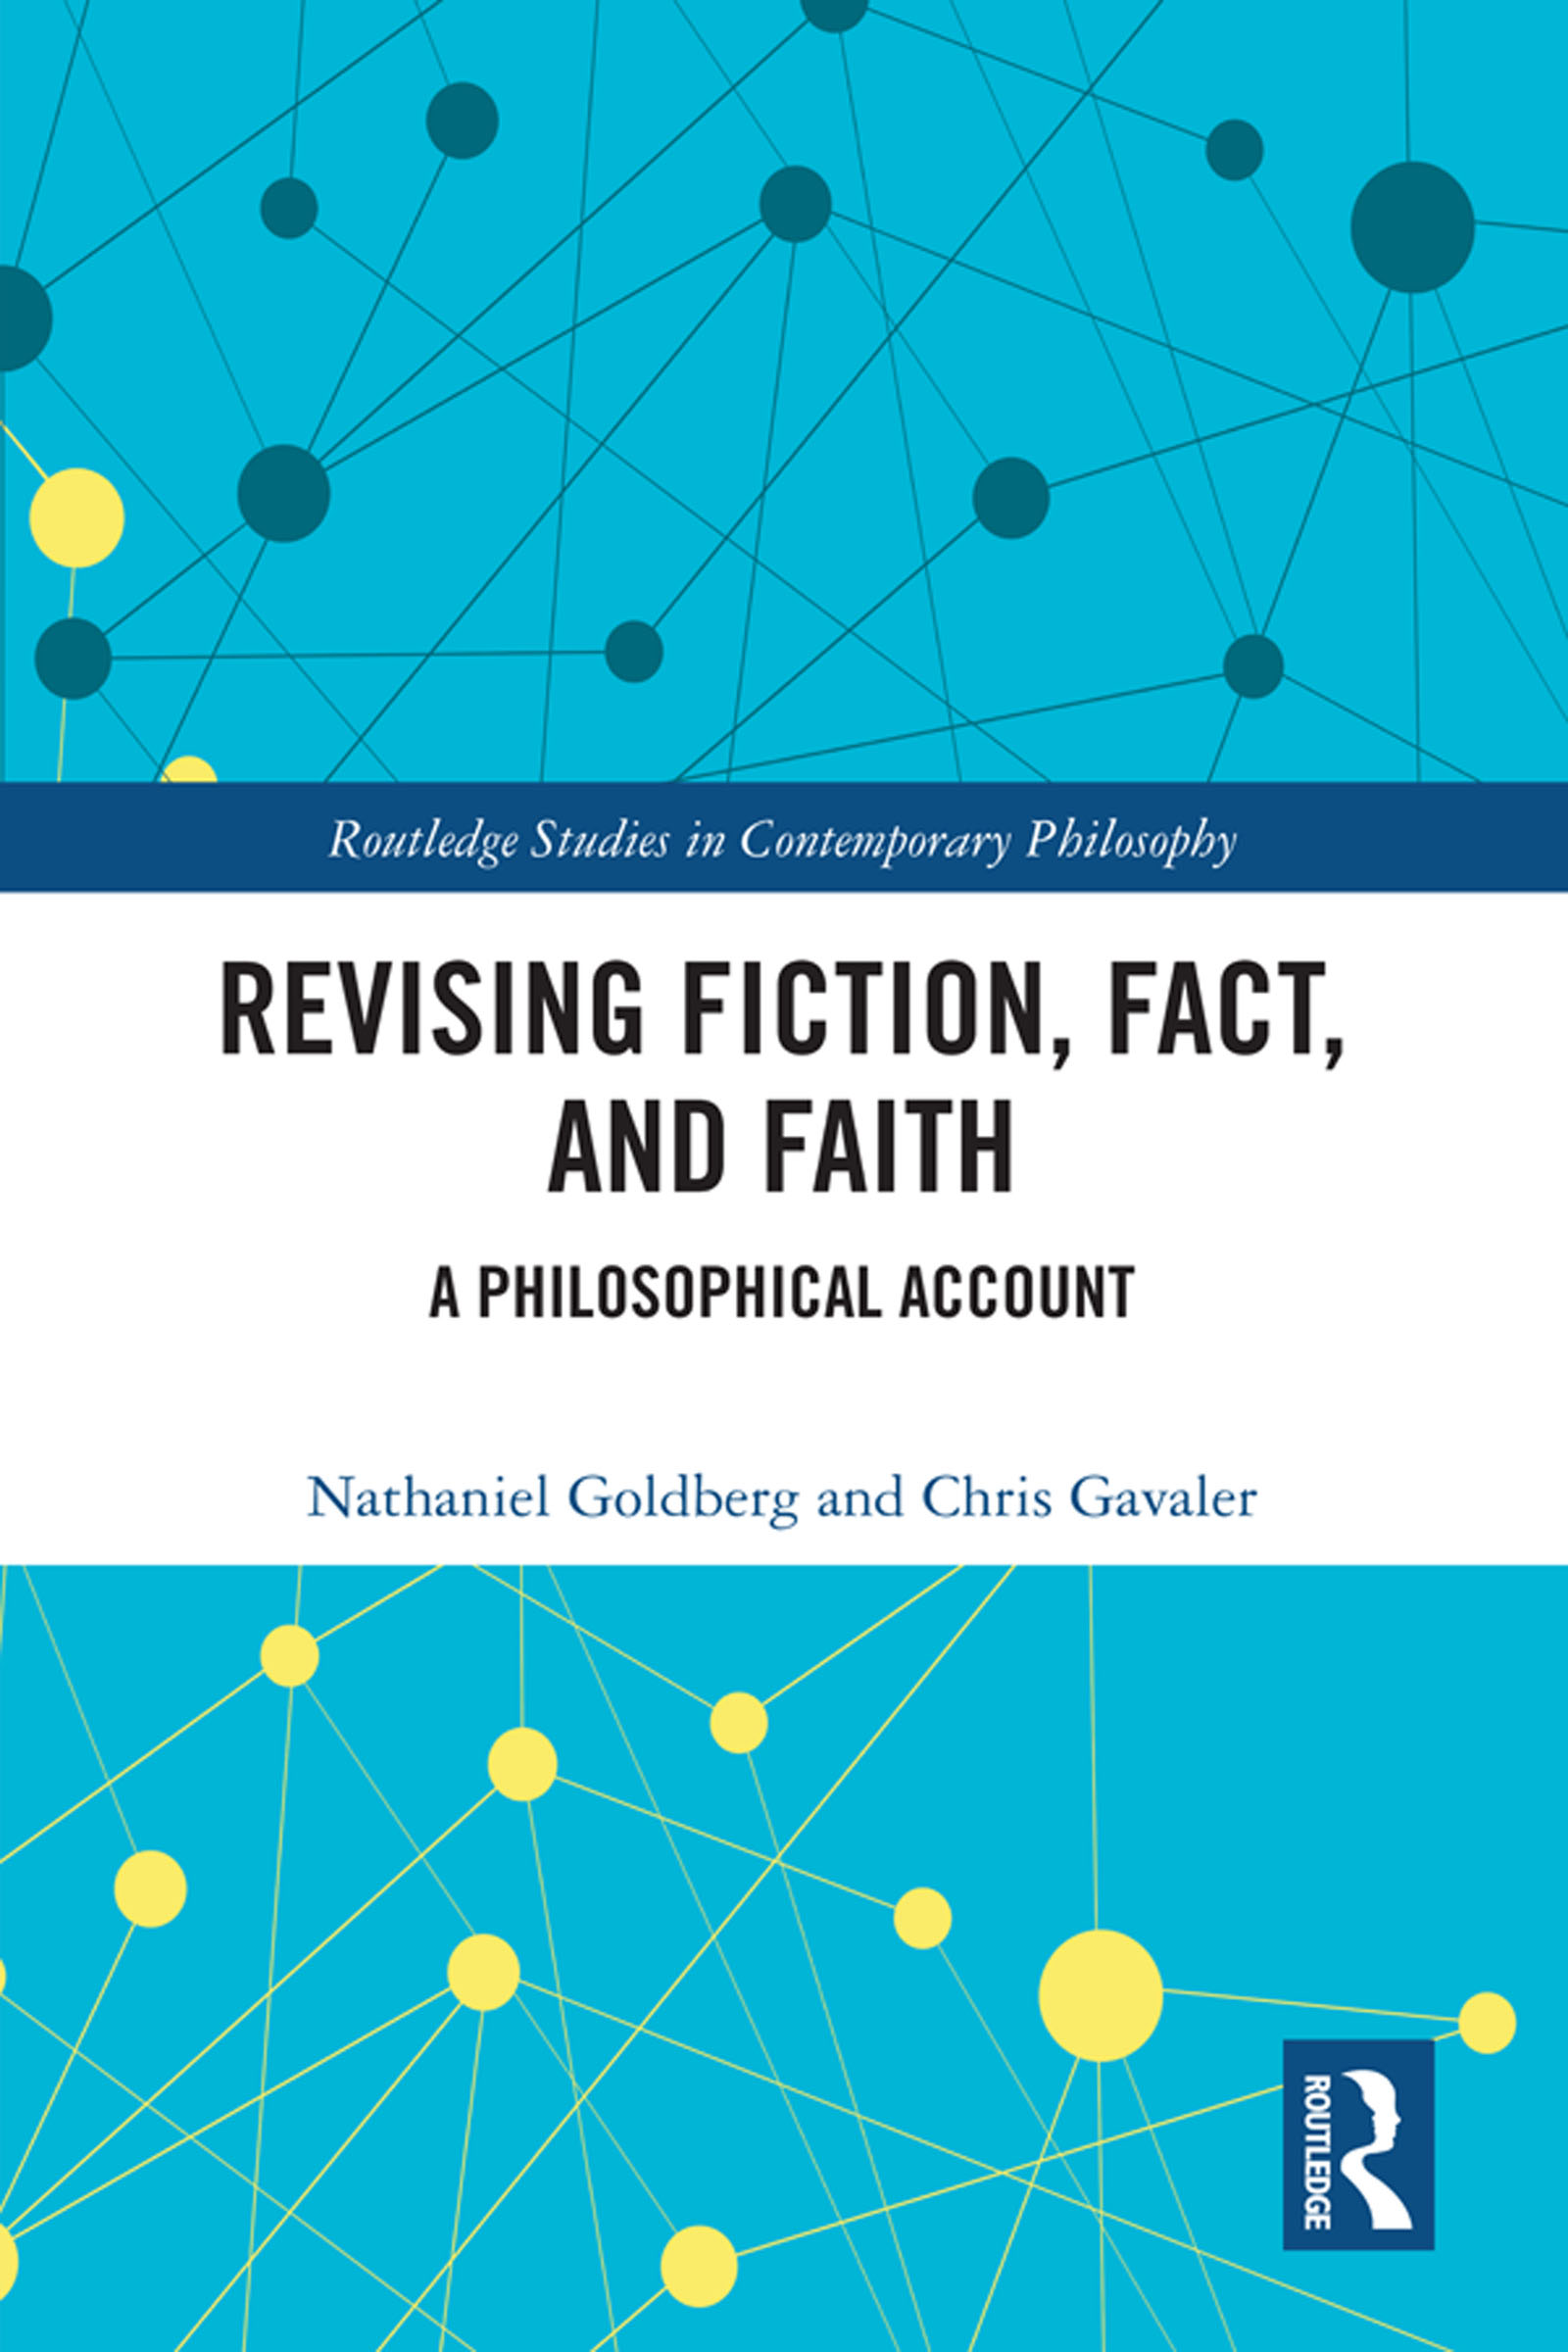 Revising Fiction, Fact, and Faith